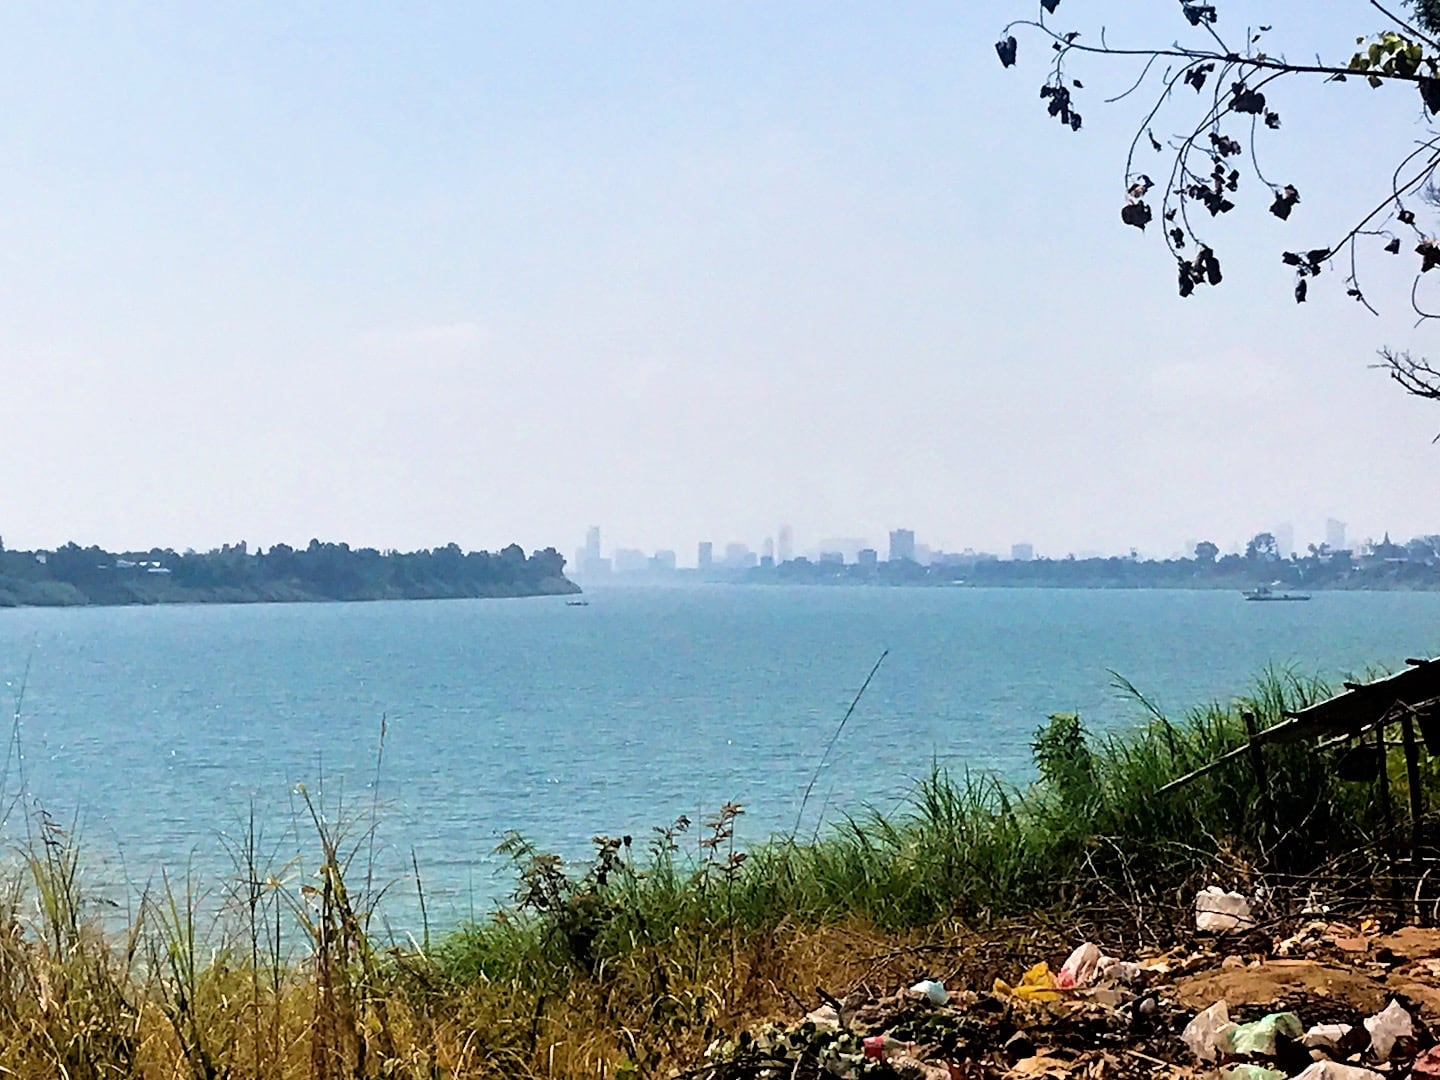 Mekong River and Phnom Penh